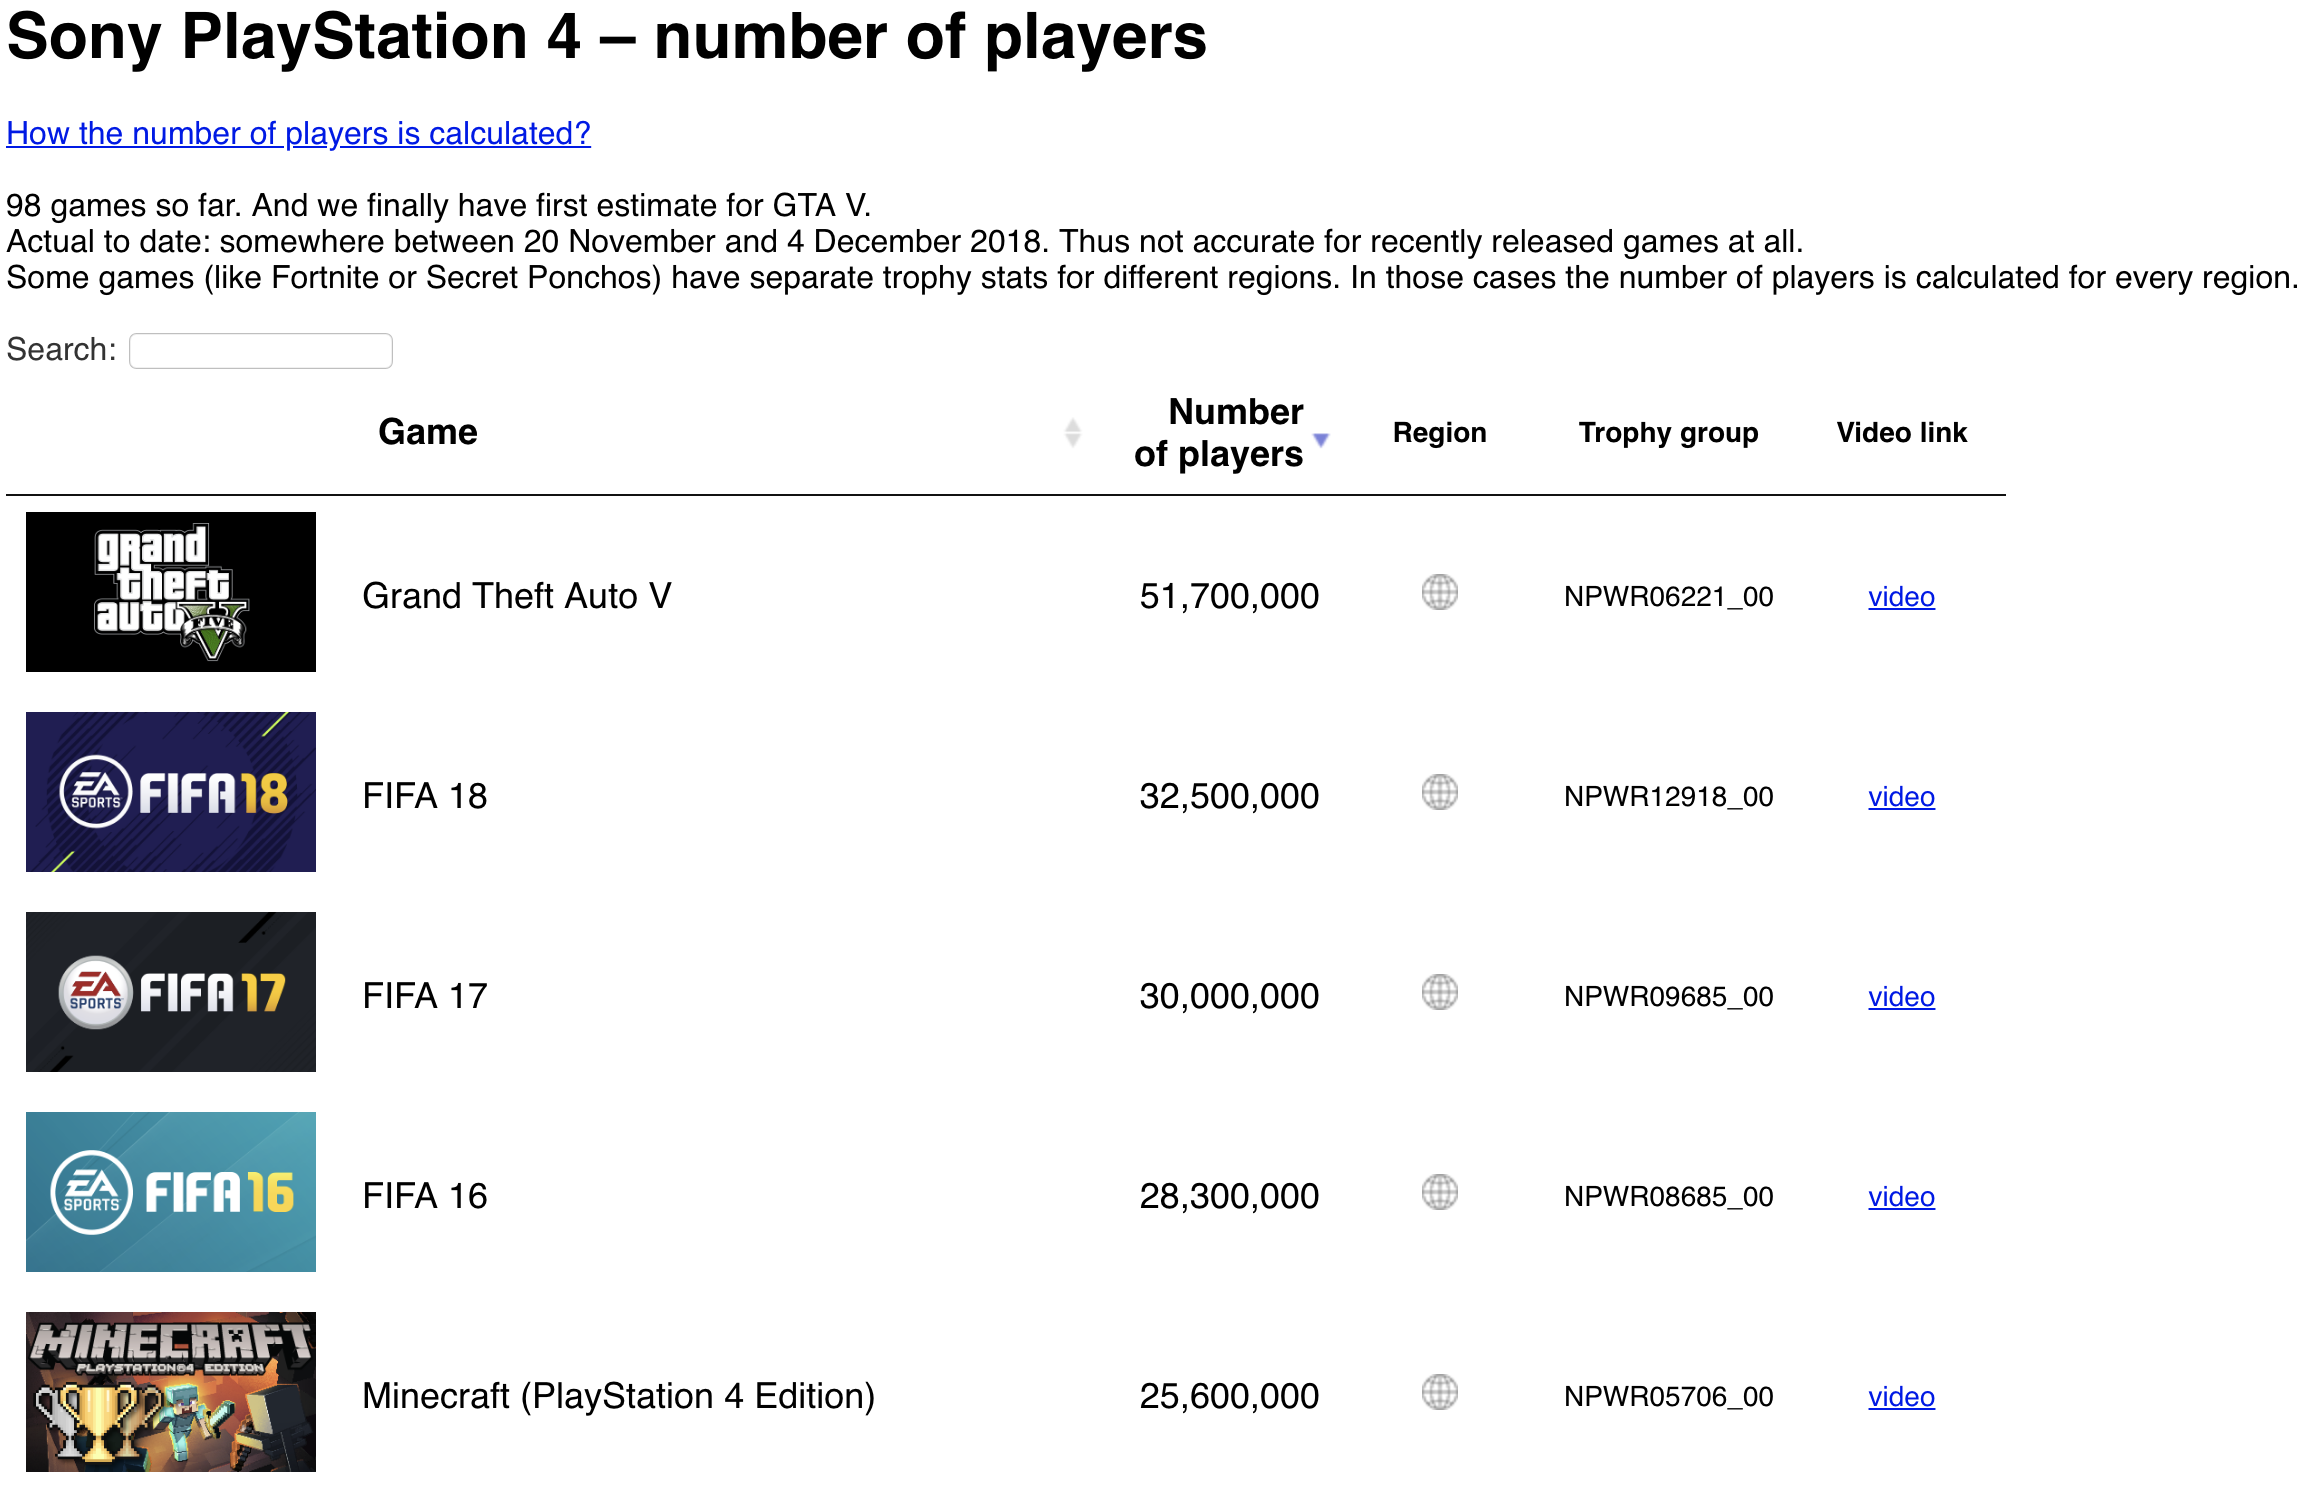 Sony inadvertently leaks player counts for PS4 titles | Ars